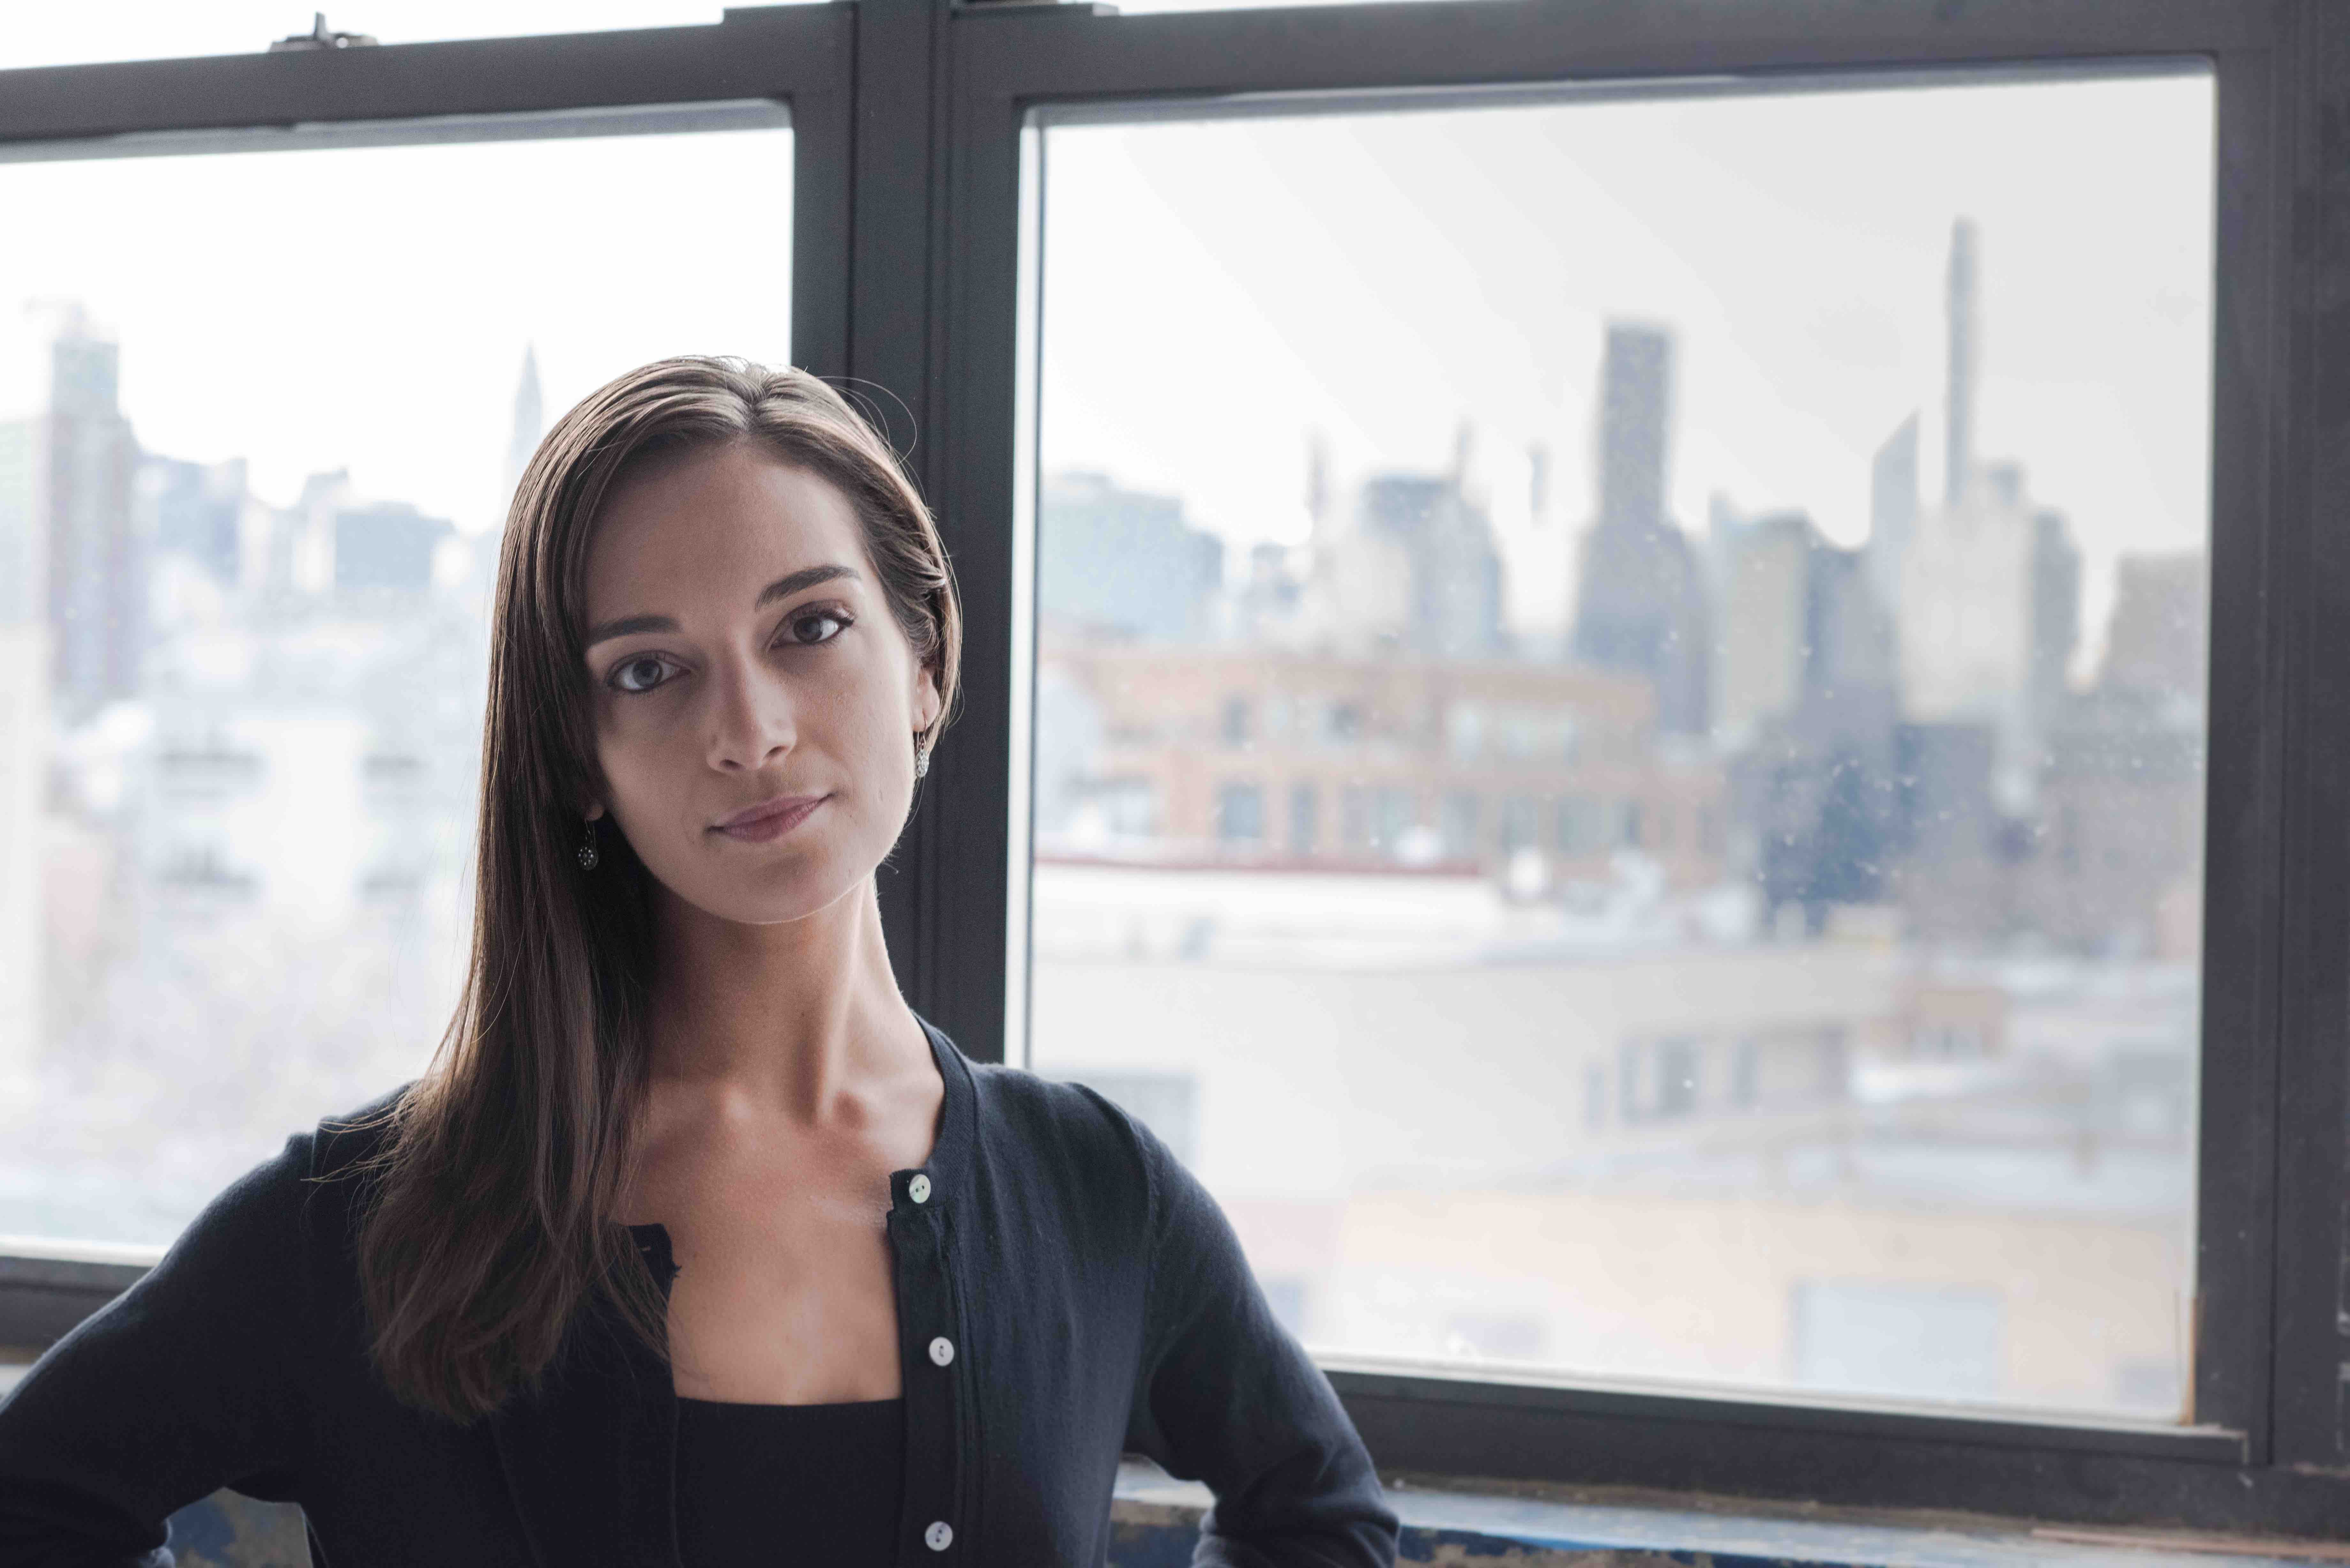 NY State Senate Candidate Julia Salazar Says Story Intended to Out Her as a Sexual Assault Survivor